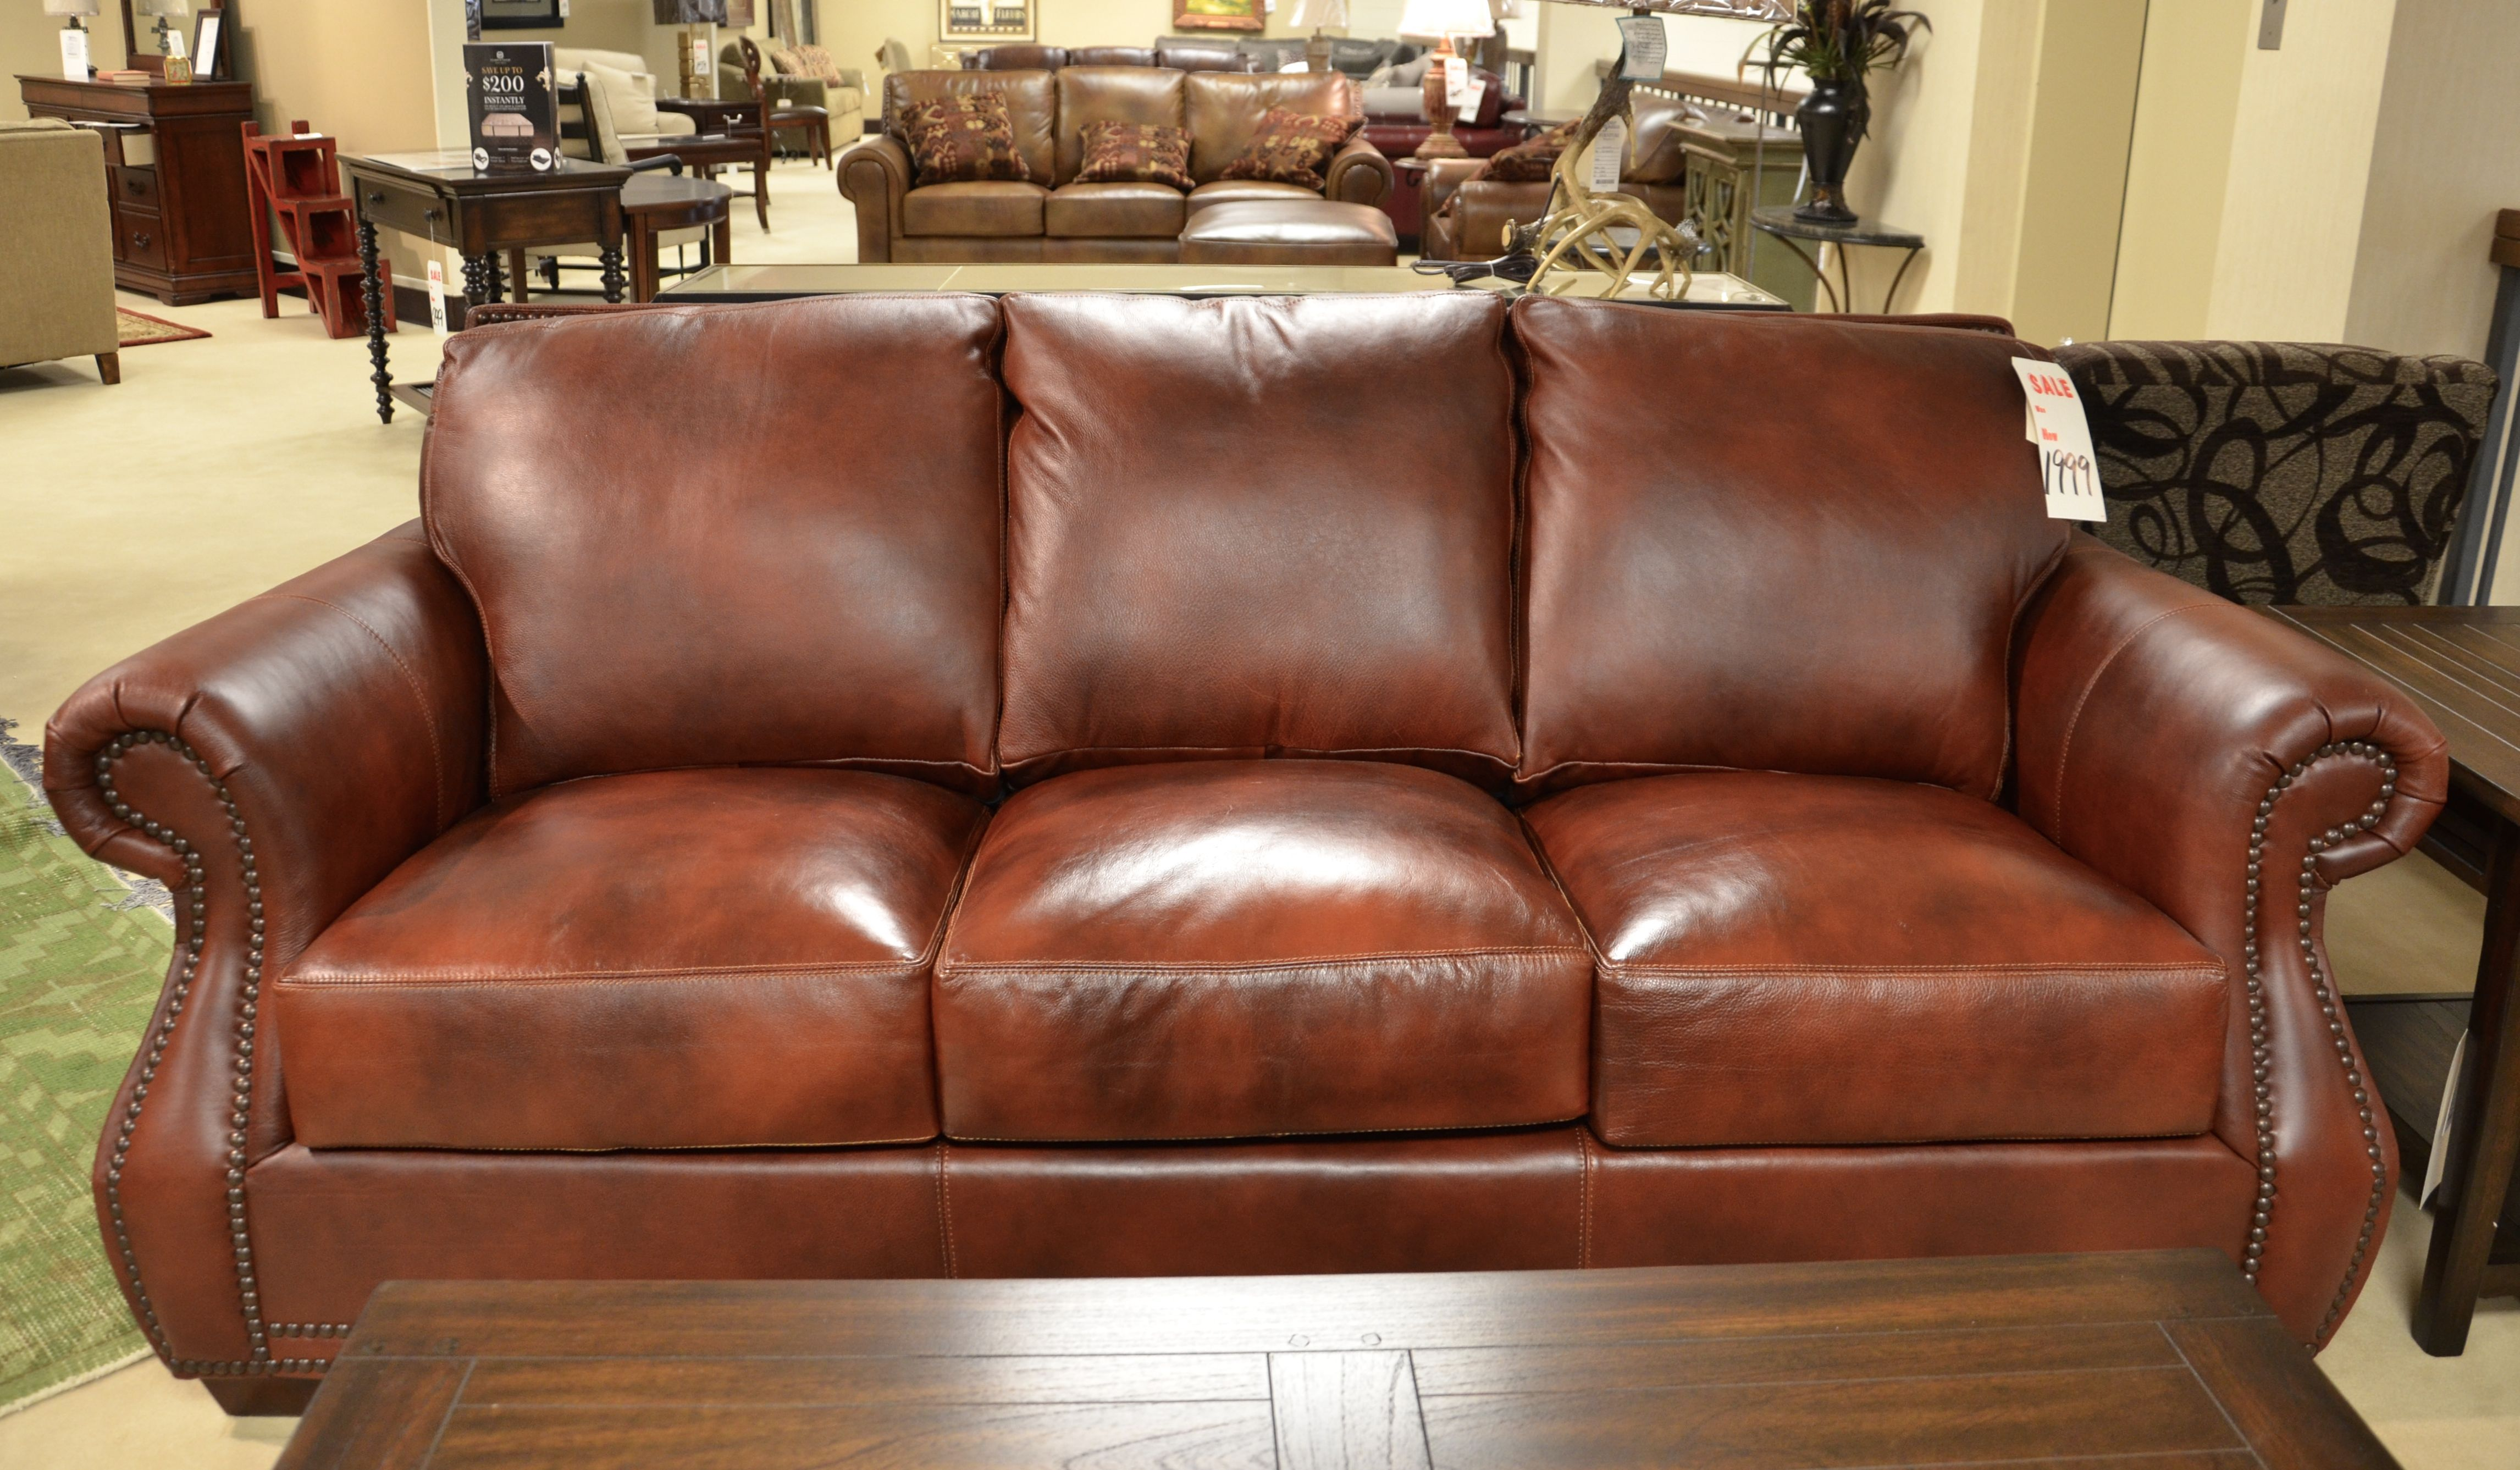 Leather Sofa With Nail Head Studded Trim Brown Leather Studded